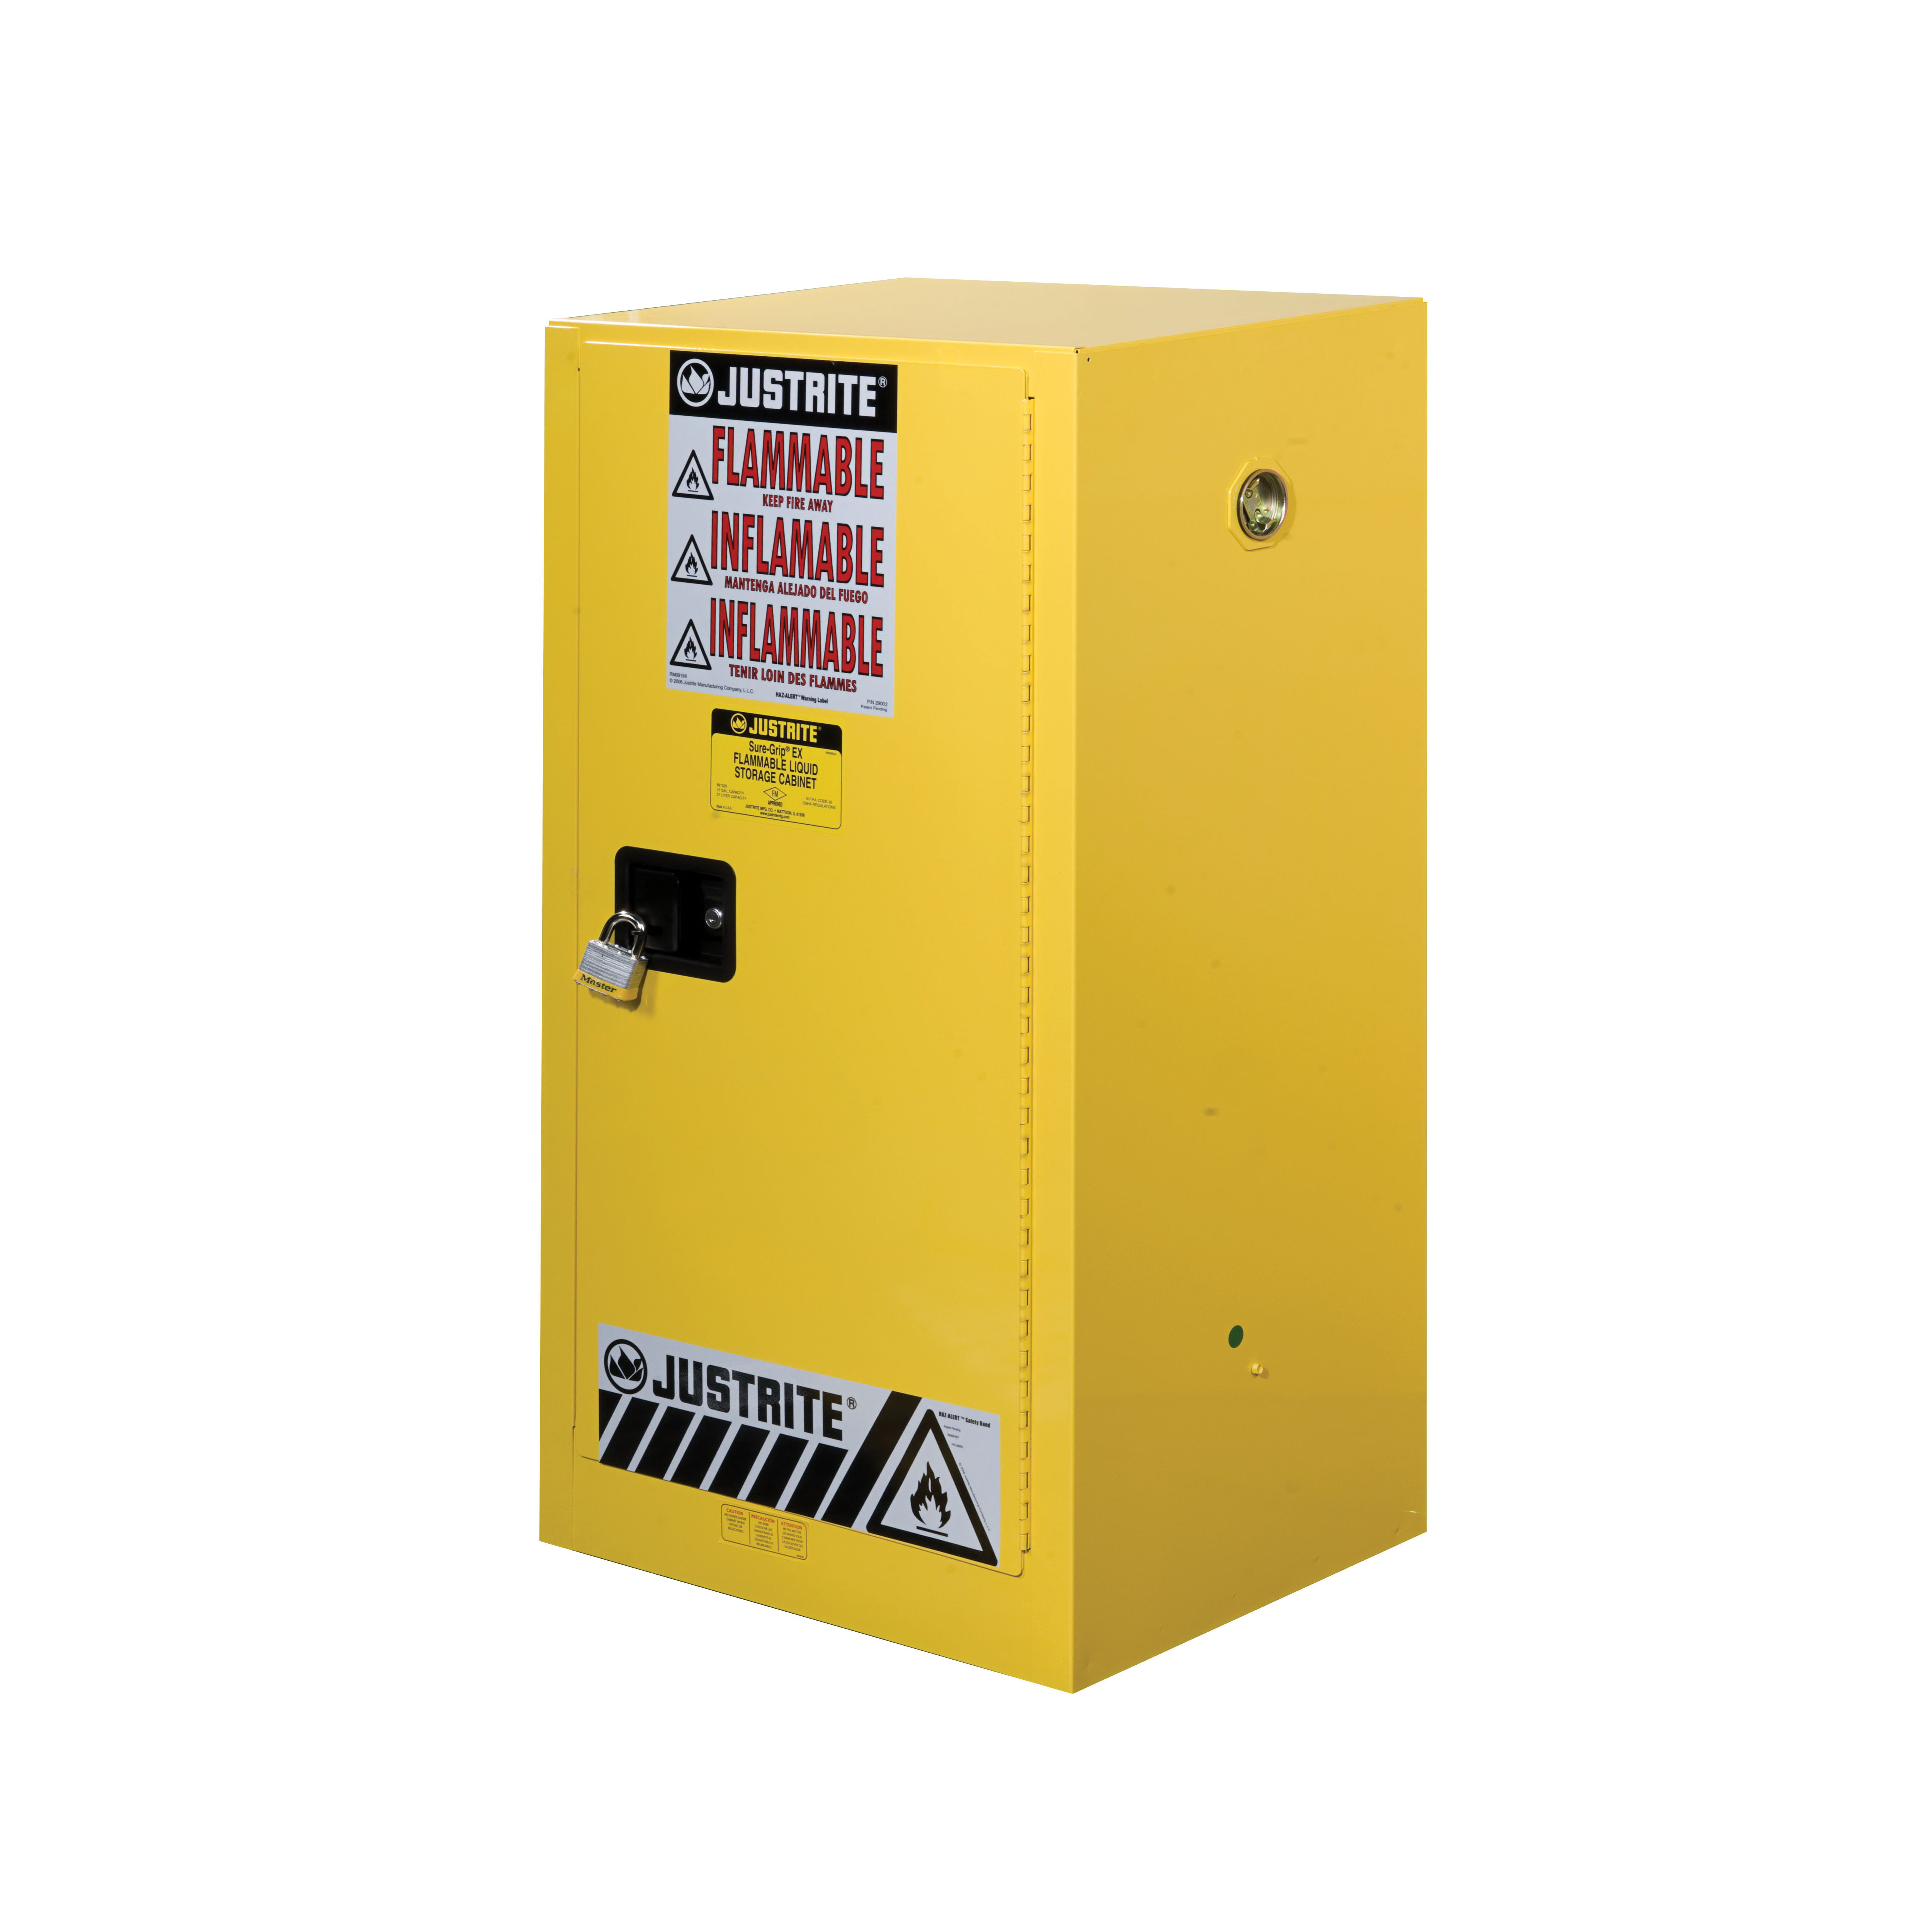 Justrite® 891500 Sure-Grip® EX Compac Flammable Safety Cabinet, 15 gal Capacity, U-Loc™ Handle, 44 in H x 23-1/4 in W x 18 in D, Manual Close Door, 1 Doors, 1 Shelves, Cold Rolled Steel, Yellow